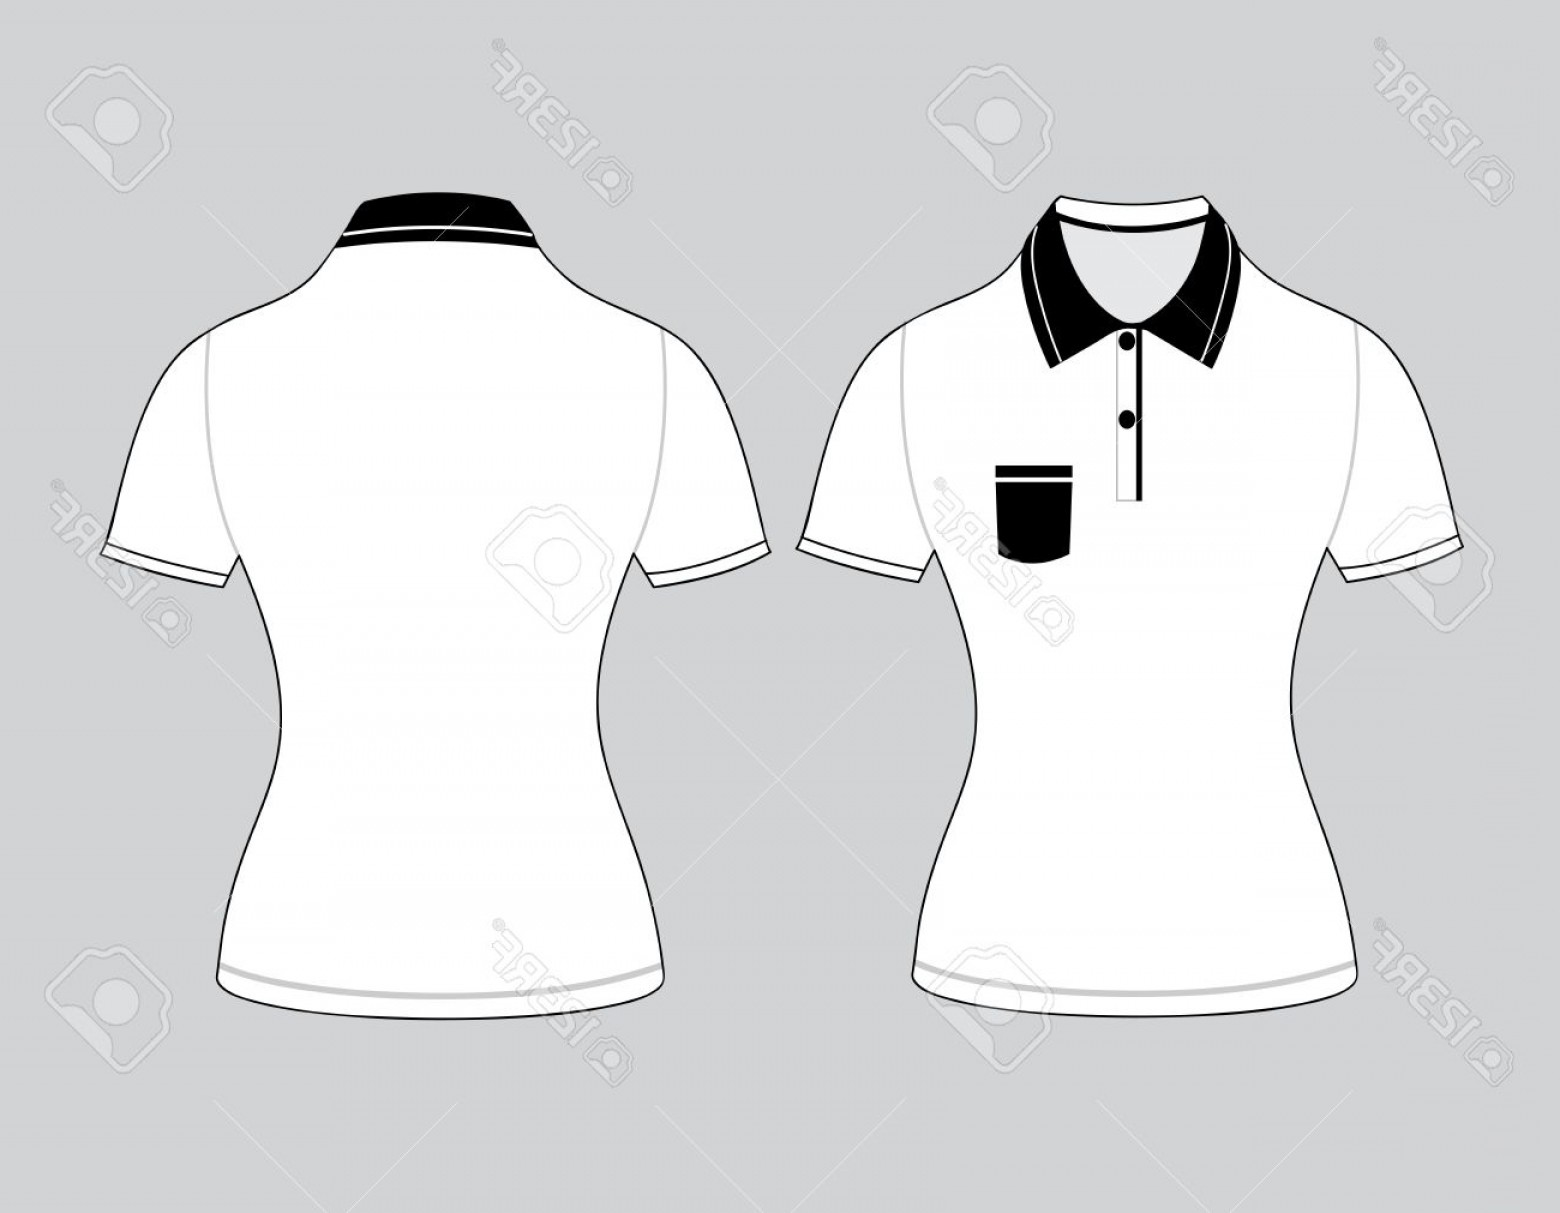 Female Polo Shirt Vector Template: Photostock Vector Polo Woman Shirt Design Templates Front And Back Views Vector Illustration